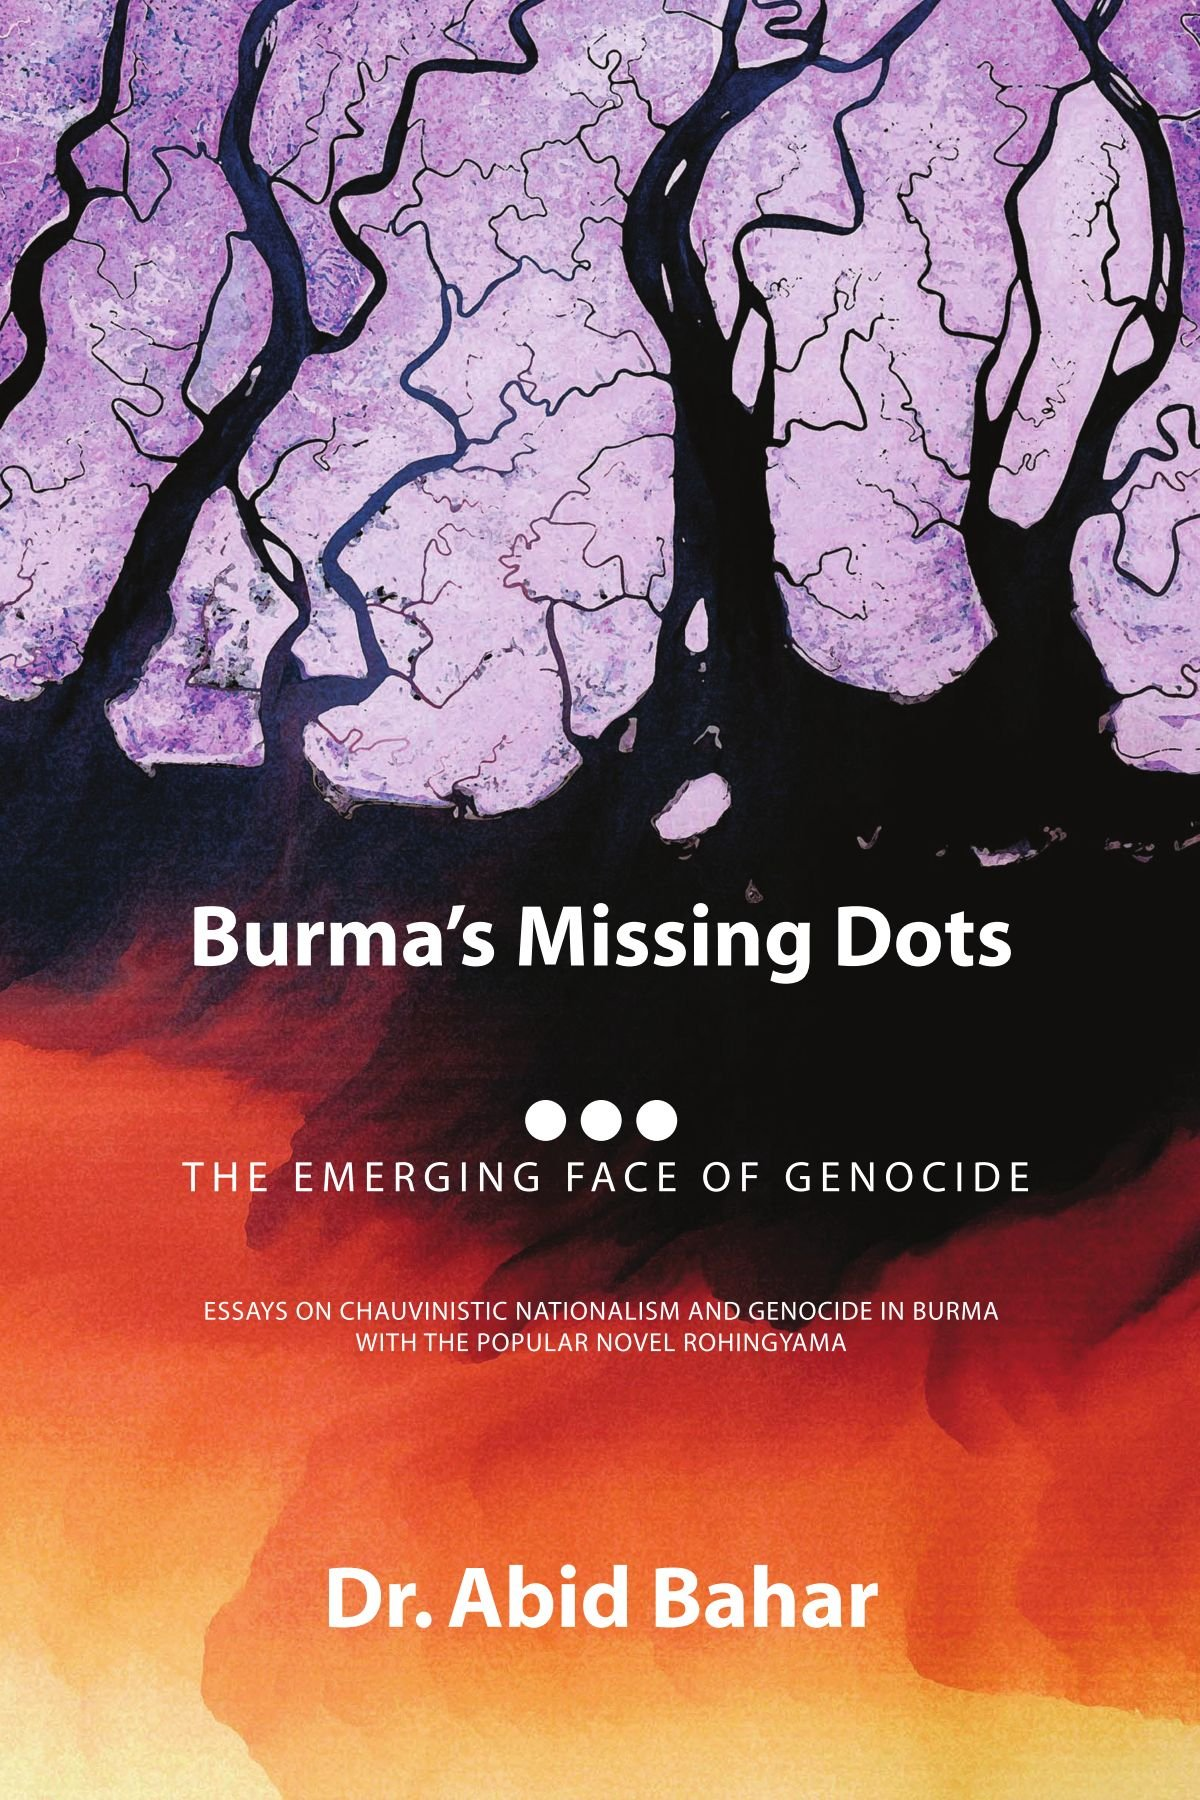 burma s missing dots the emerging face of genocide dr abid bahar burma s missing dots the emerging face of genocide dr abid bahar 9781441593788 com books